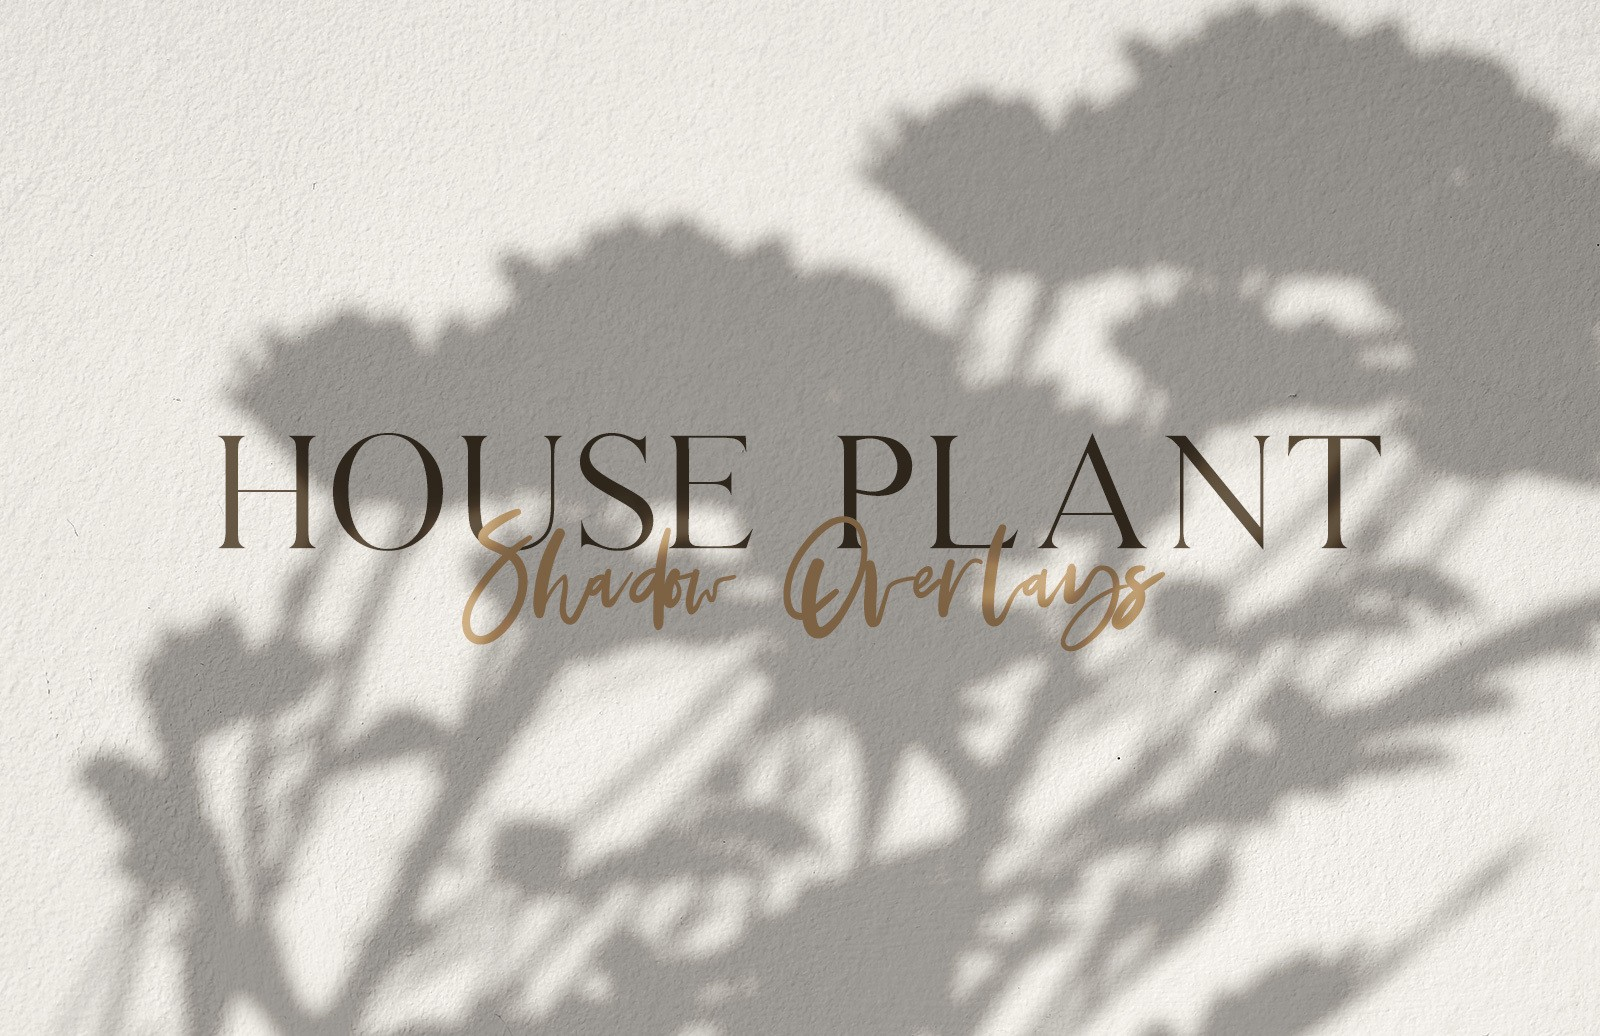 House Plant Shadow Overlays Preview 1